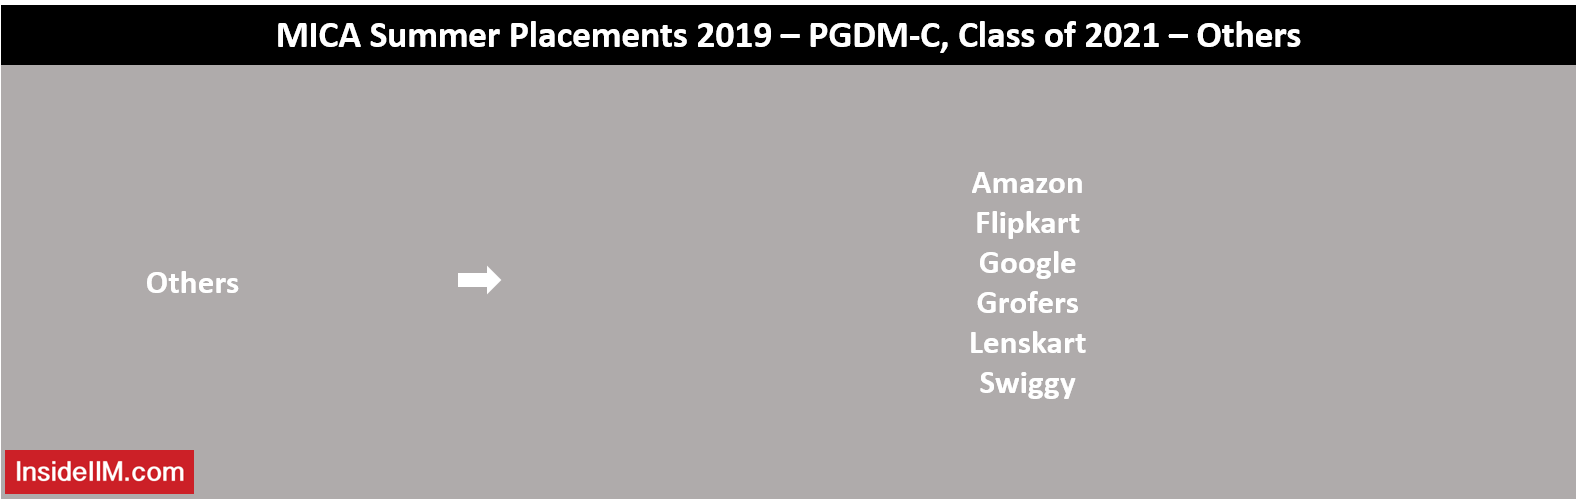 MICA Summer Placements 2019 - Others